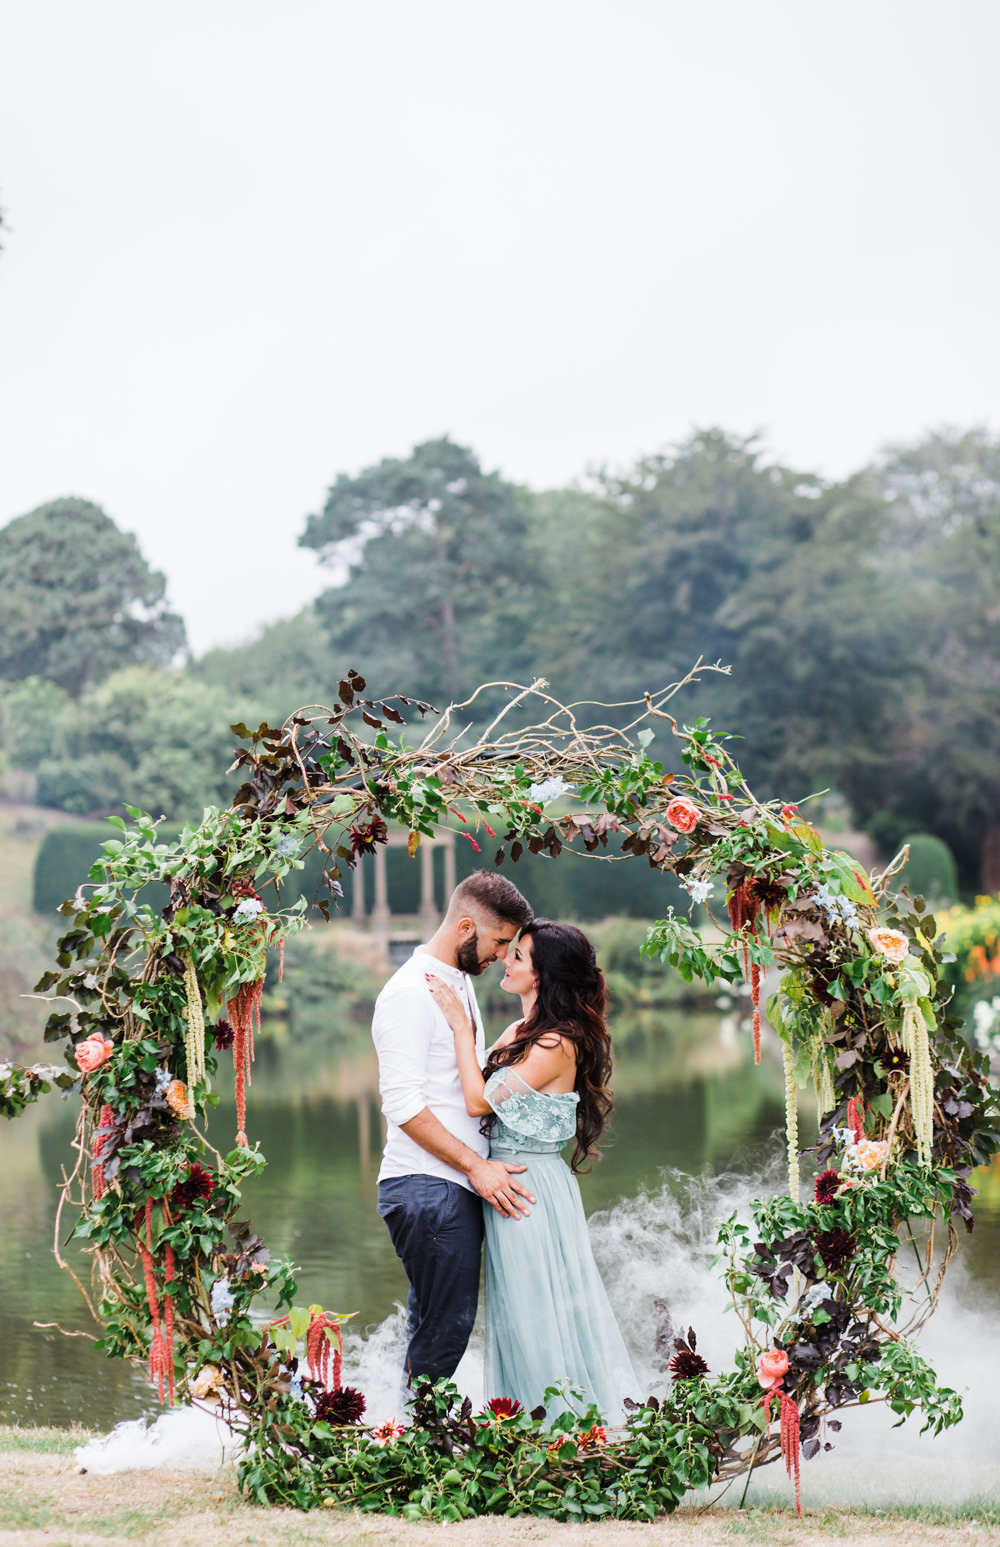 Flowers Moongate Arch Backdrop Greenery Foliage Amaranthus Willow Dahlias Ethereal Romantic Wedding Ideas Katherine Newman Photography